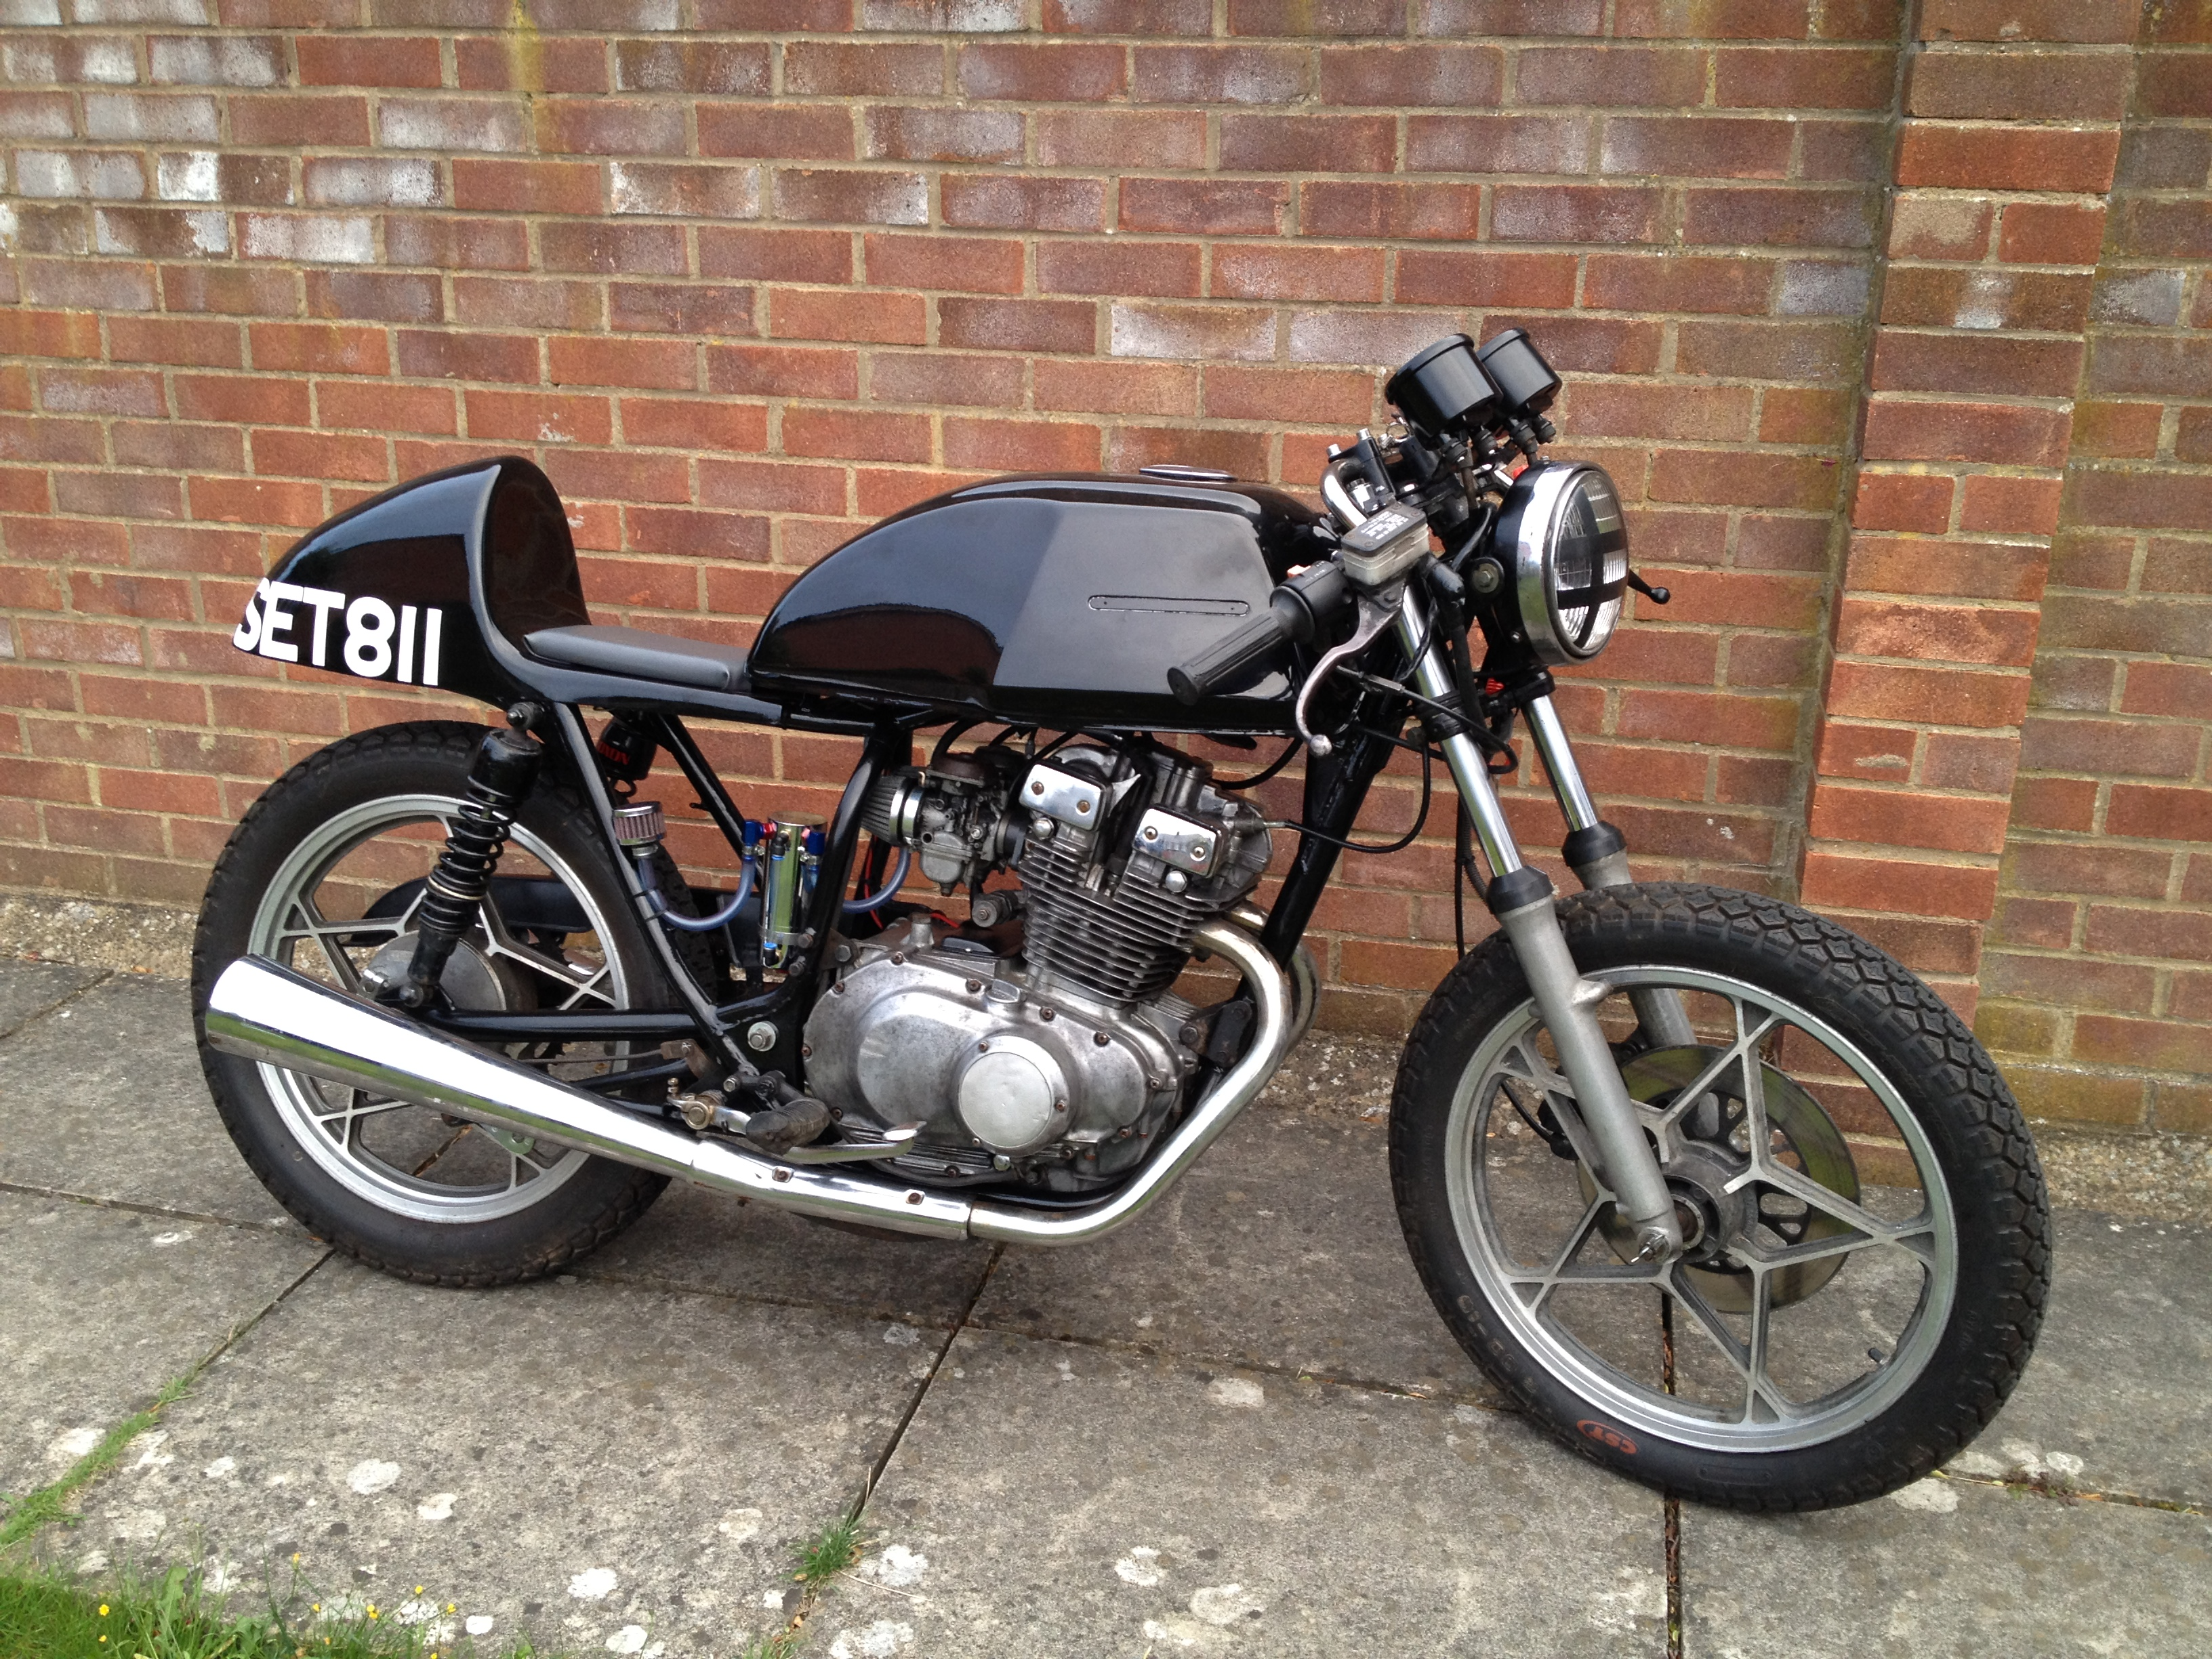 Bringing the Dream of a Budget-Built Cafe Racer to Fruition